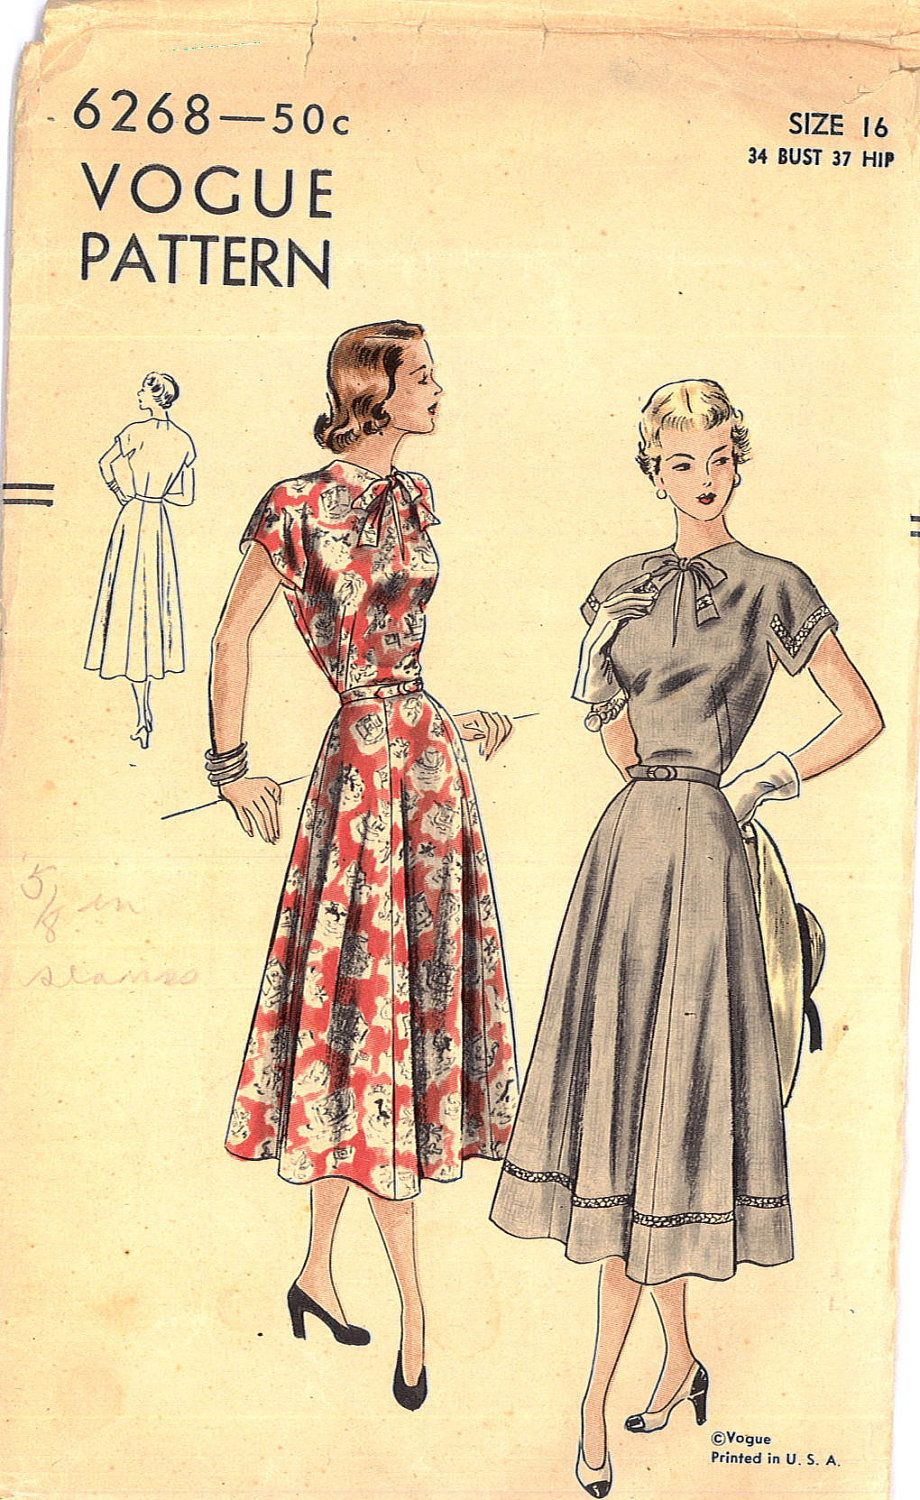 More Forties Inspired Flair: Vintage 1940s Vogue Six-Gored Flair Skirt Dress Pattern